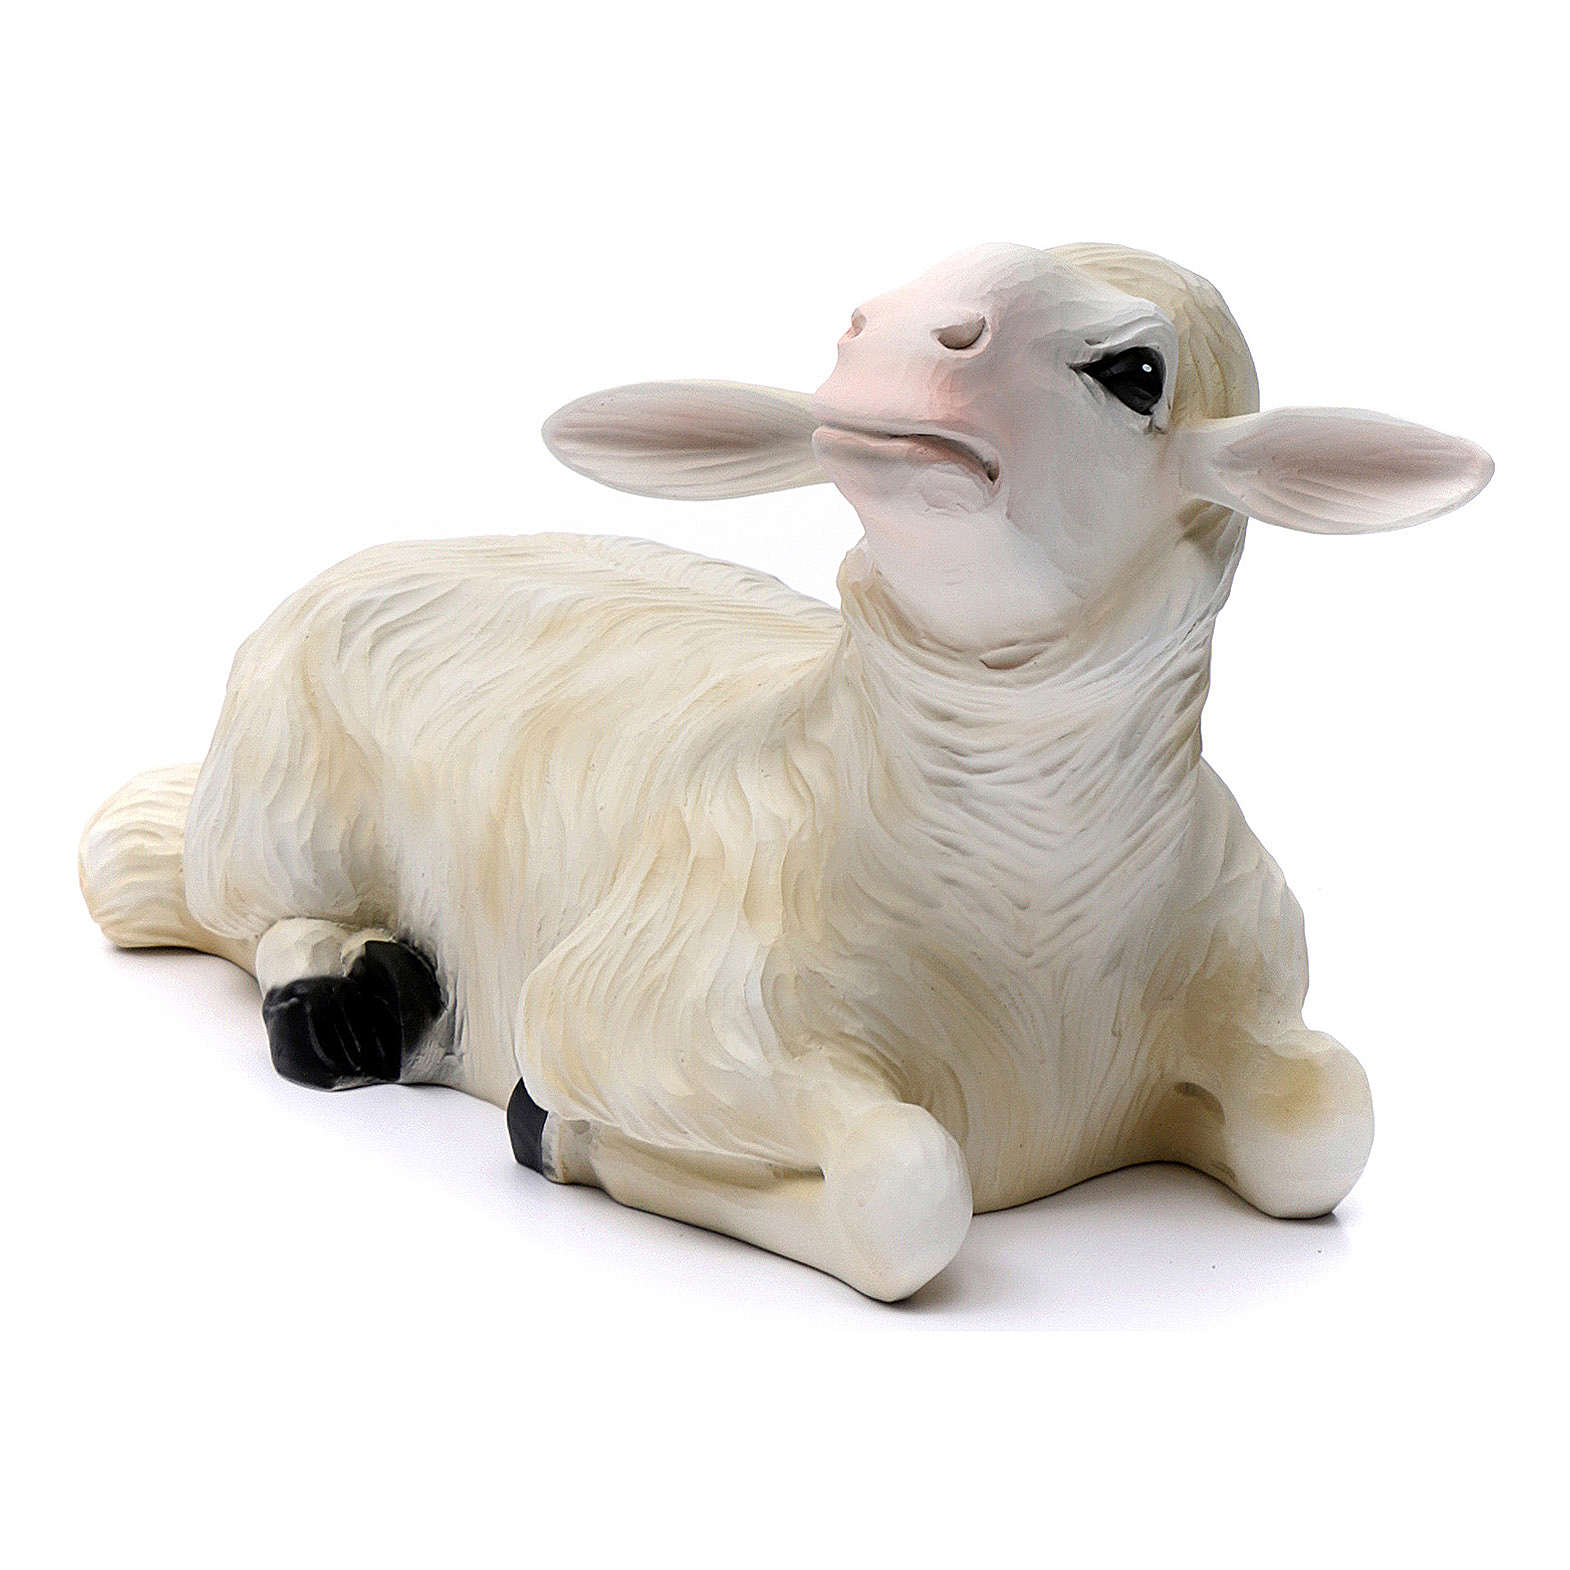 2 Sheep for Nativity Scene in painted fibreglass 80 cm for EXTERNAL USE 4